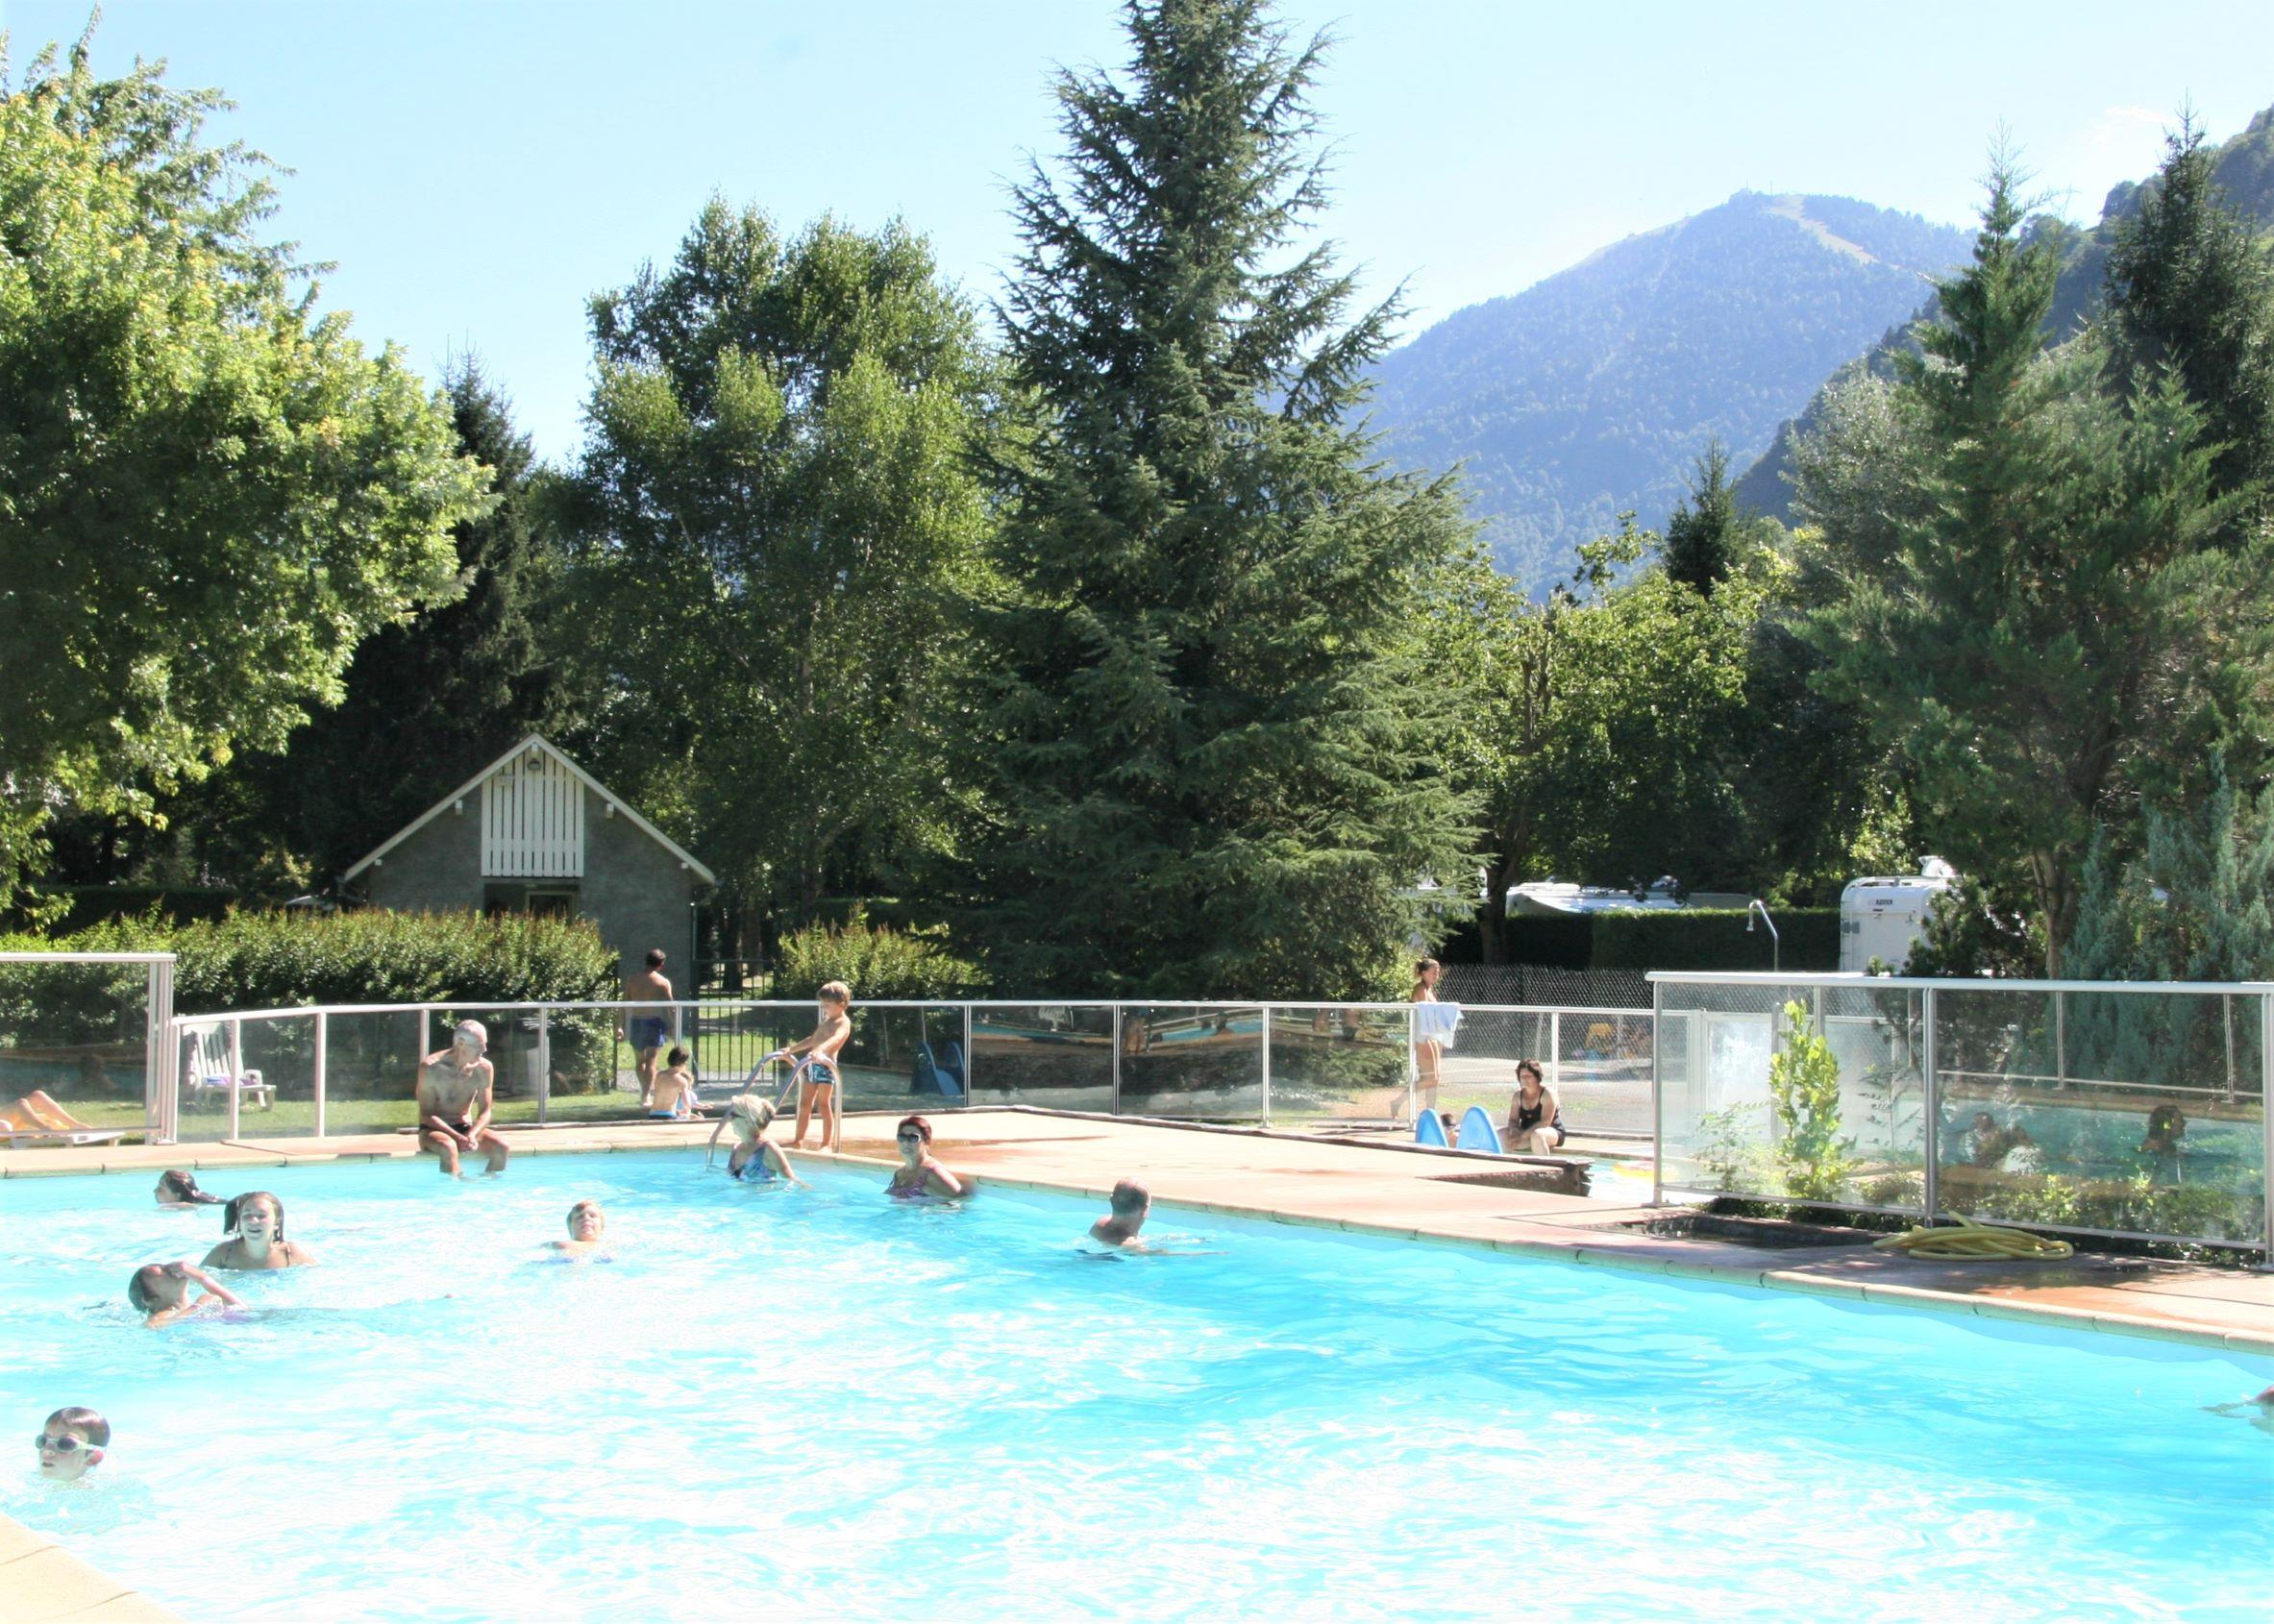 Establishment Camping Pradelongue - Bagneres De Luchon